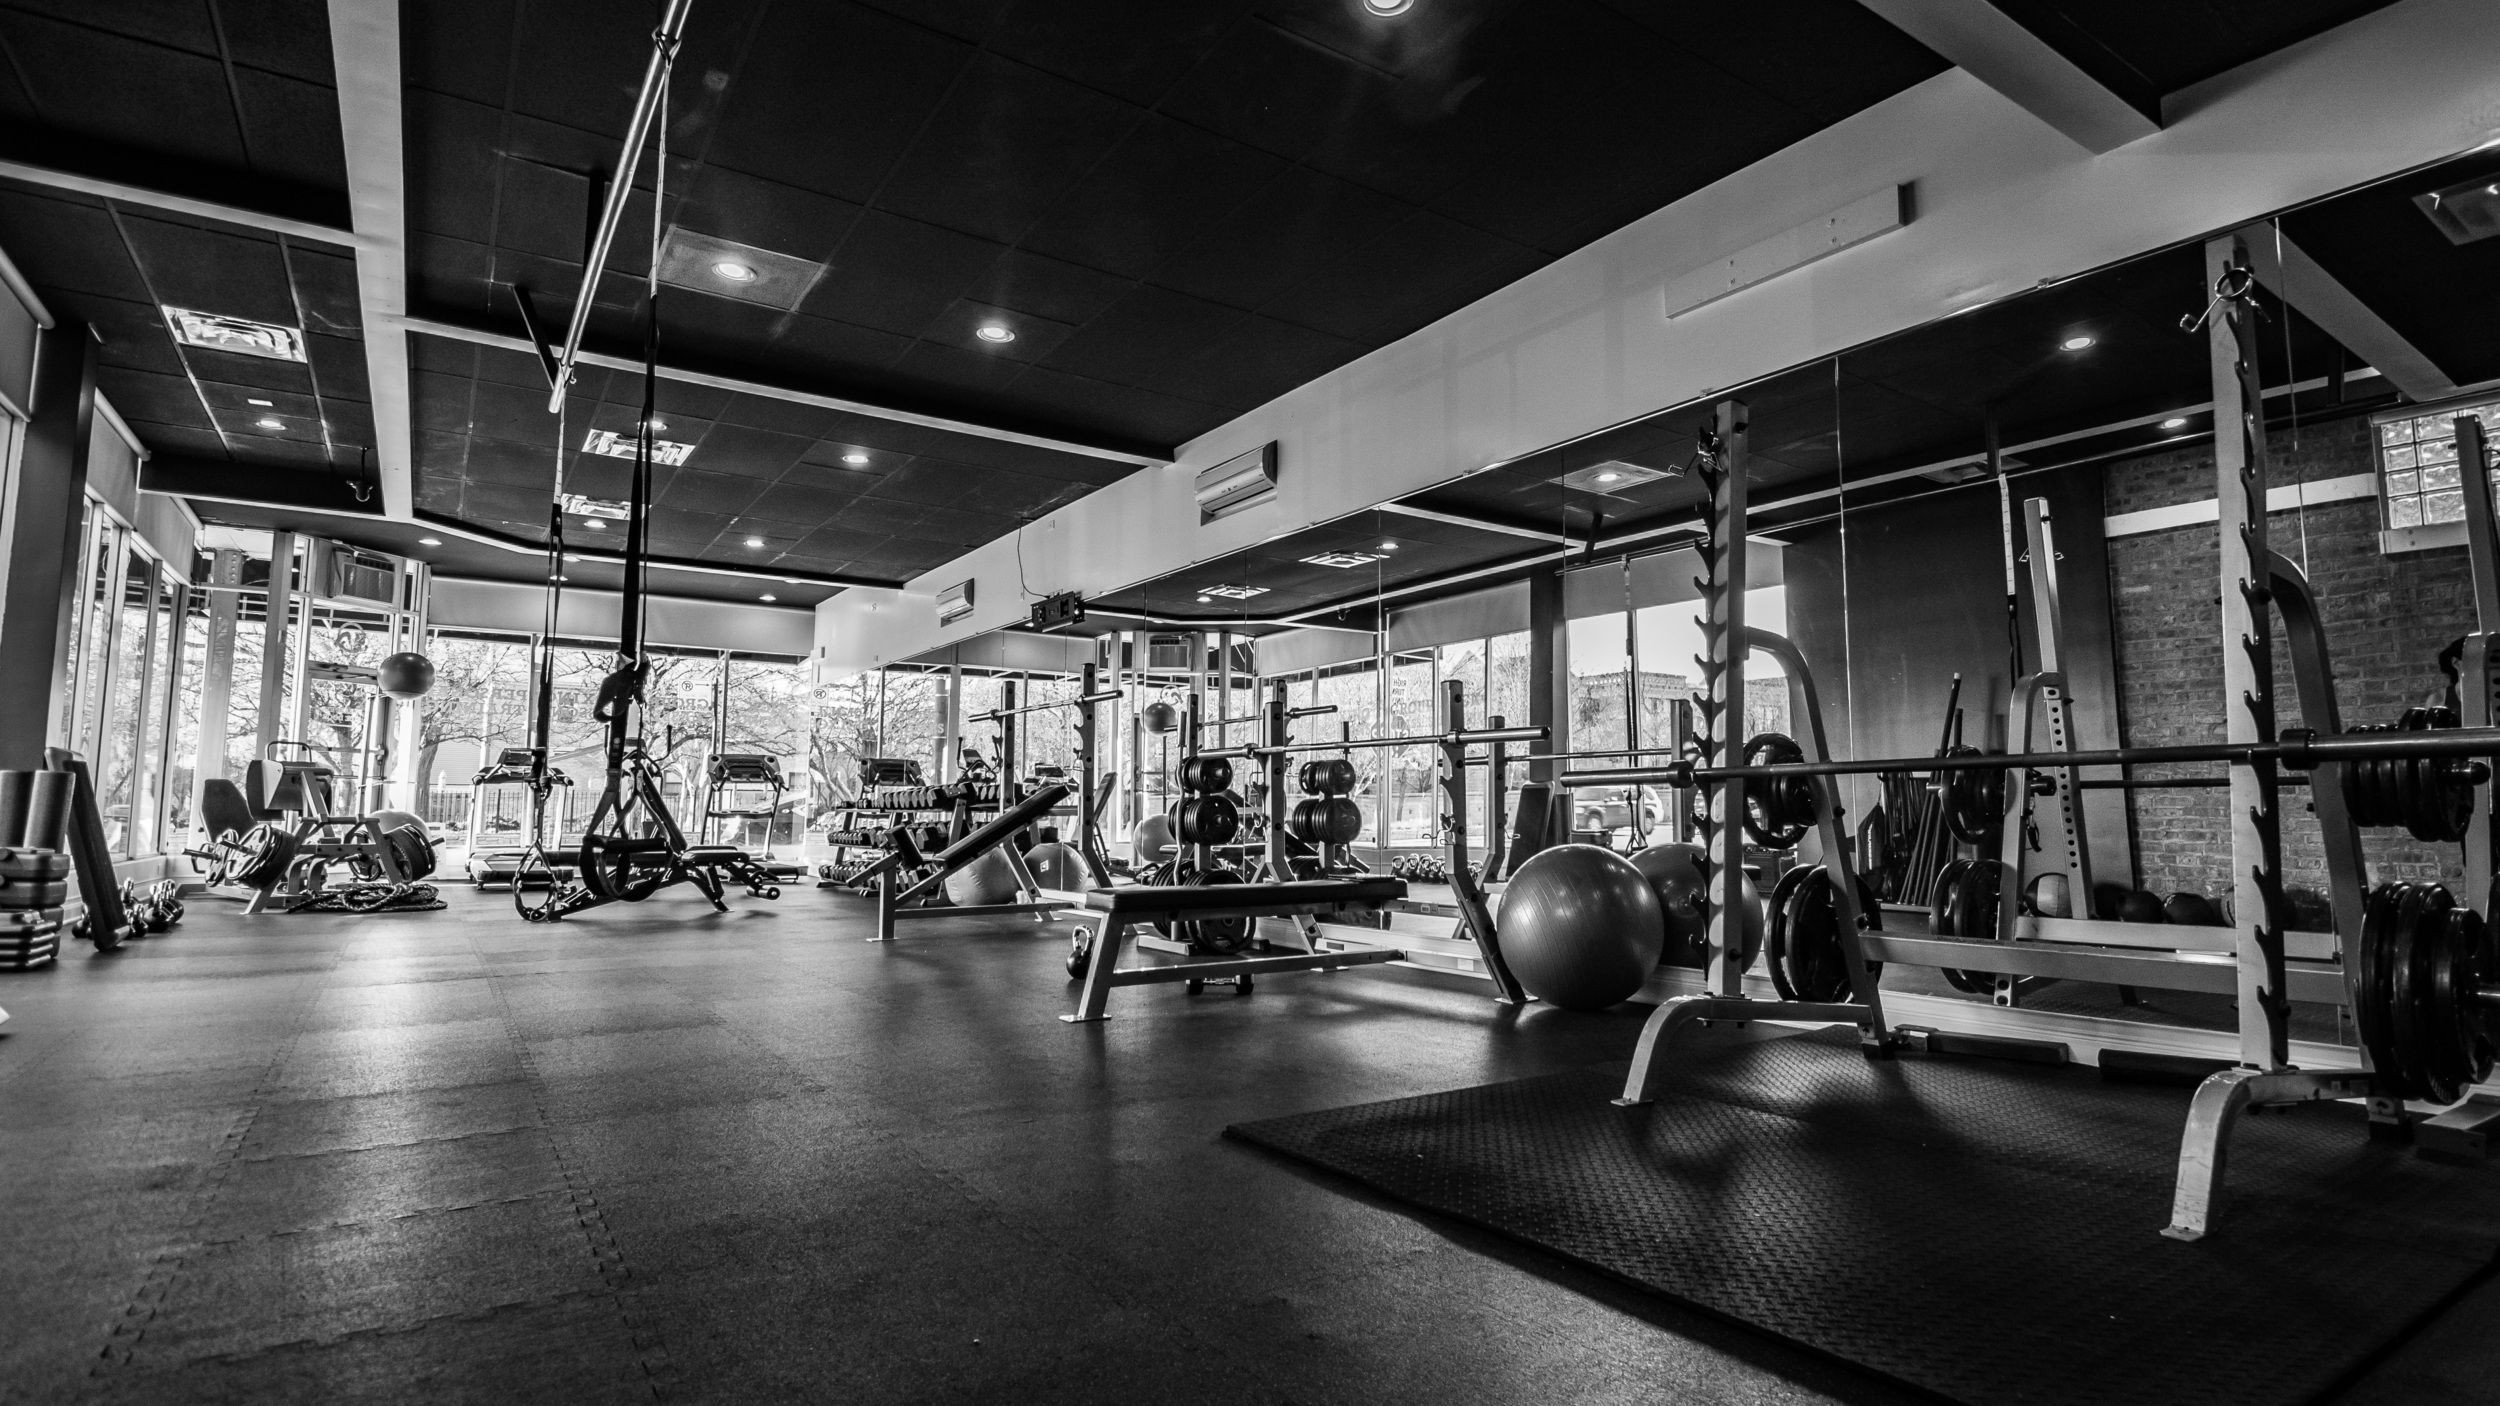 Personal Training - Full-body workouts tailored to your specific fitness needs and goals with experienced personal trainers!Click here to learn more.